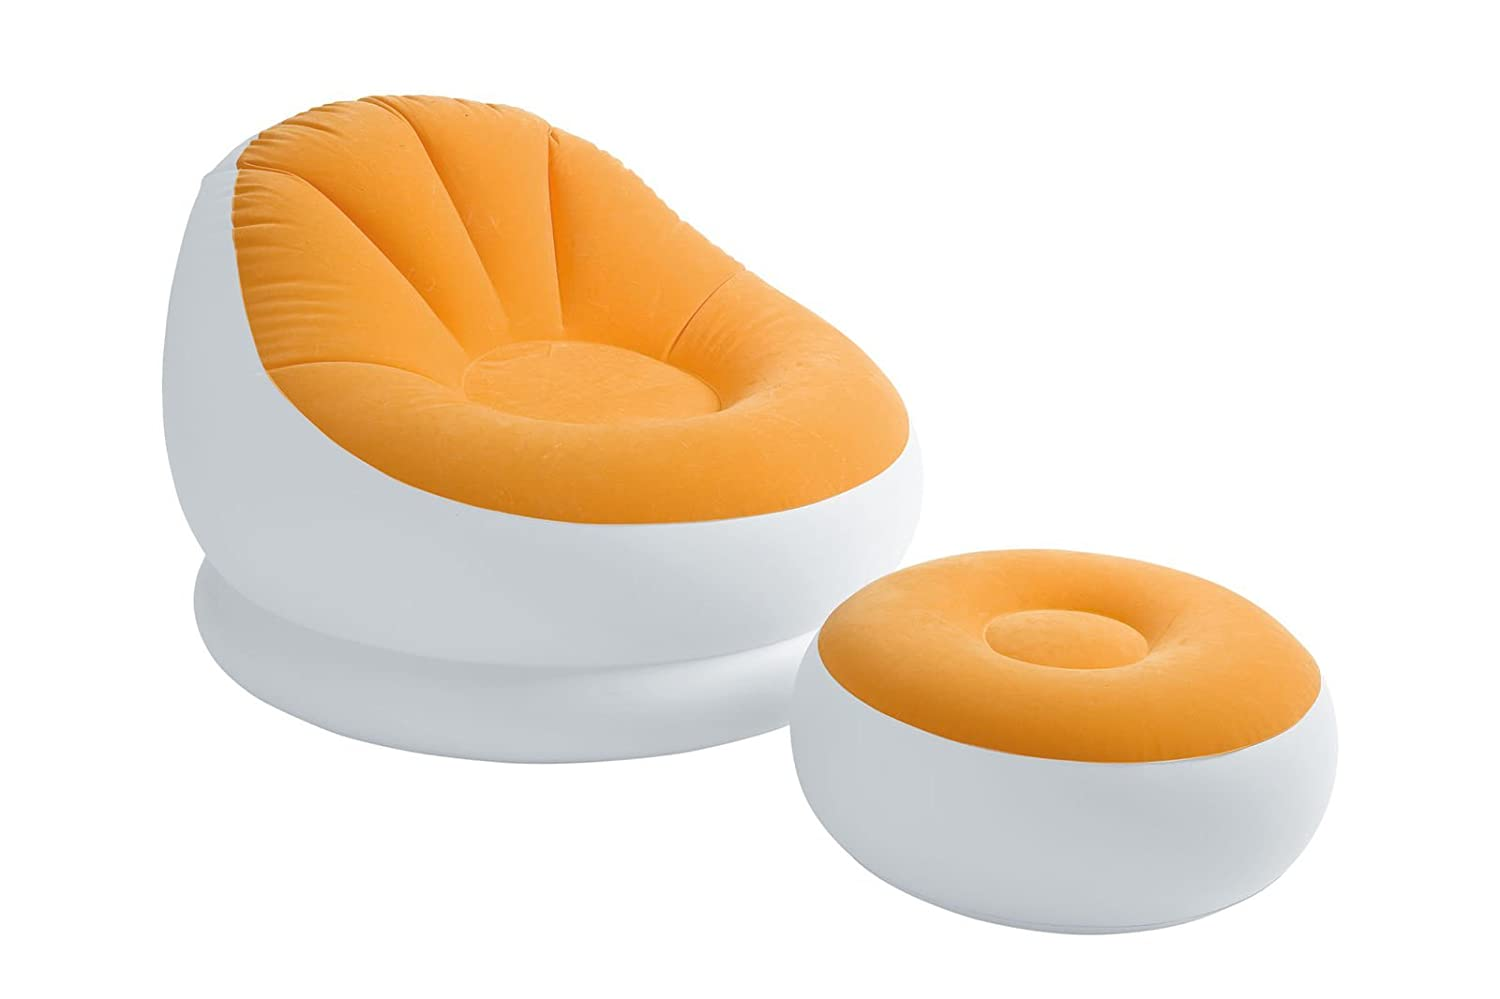 Top Image Inflatable Cafe Chair